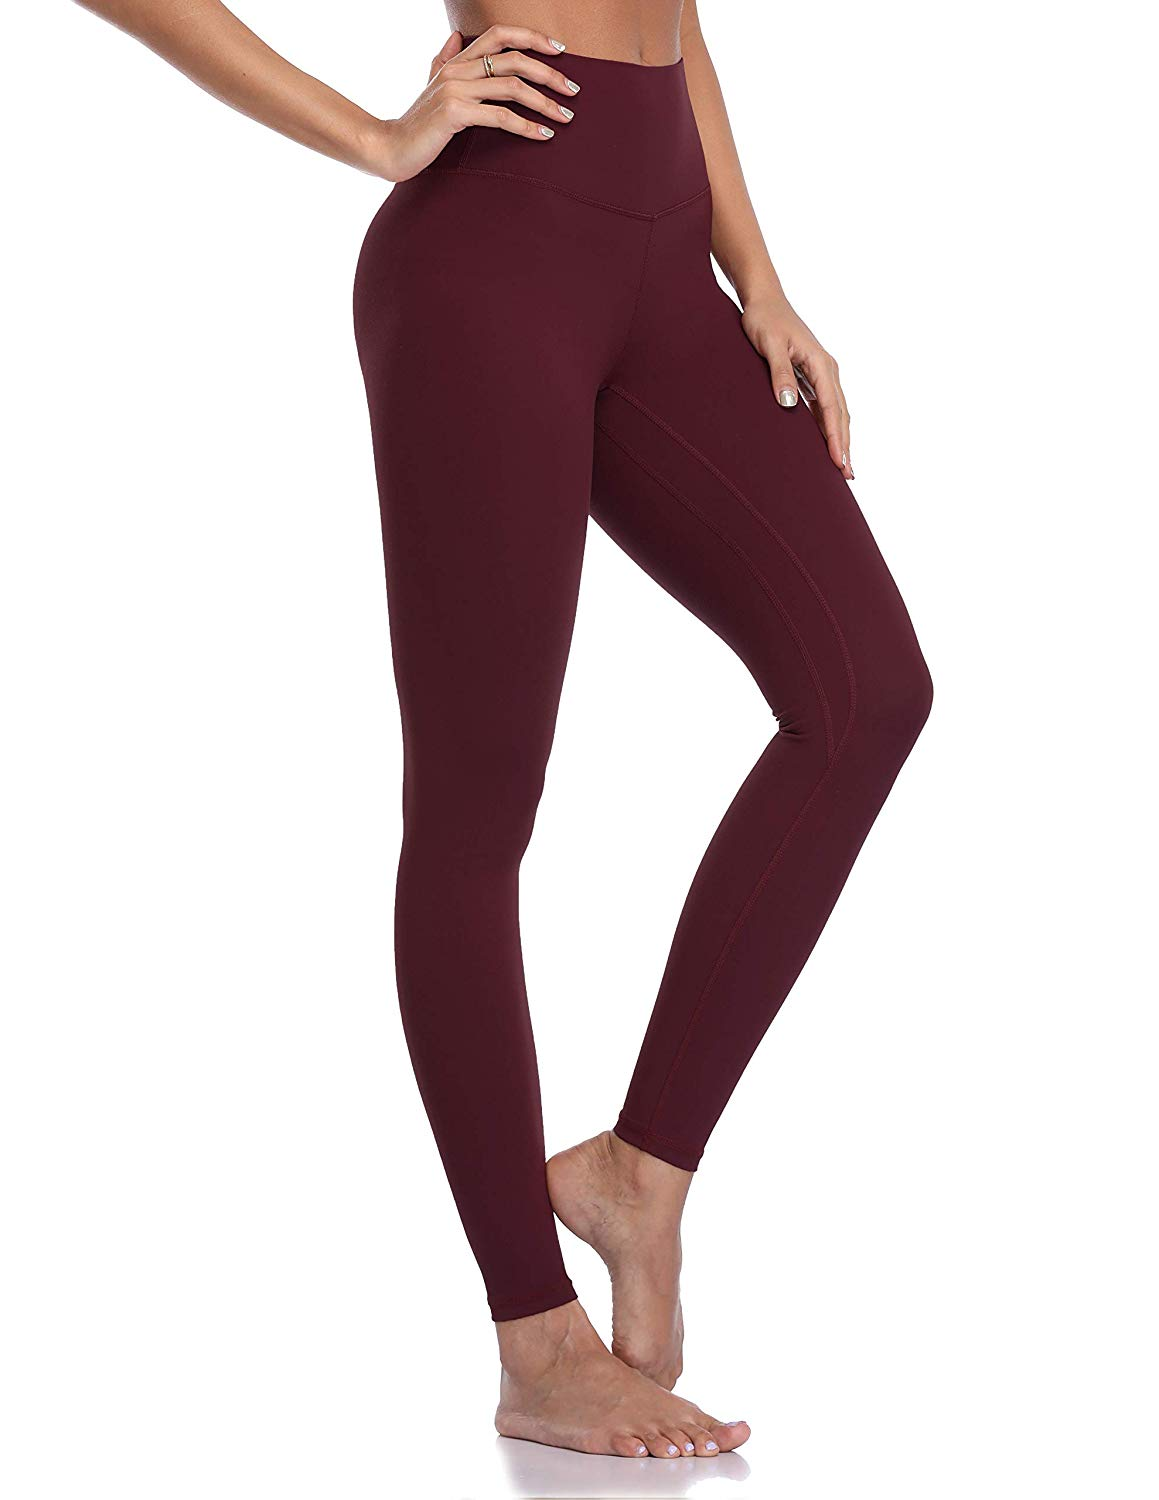 420ad01599433 Colorfulkoala Women's Brushed Buttery Soft High Waisted Leggings Full  Length Yoga Pants